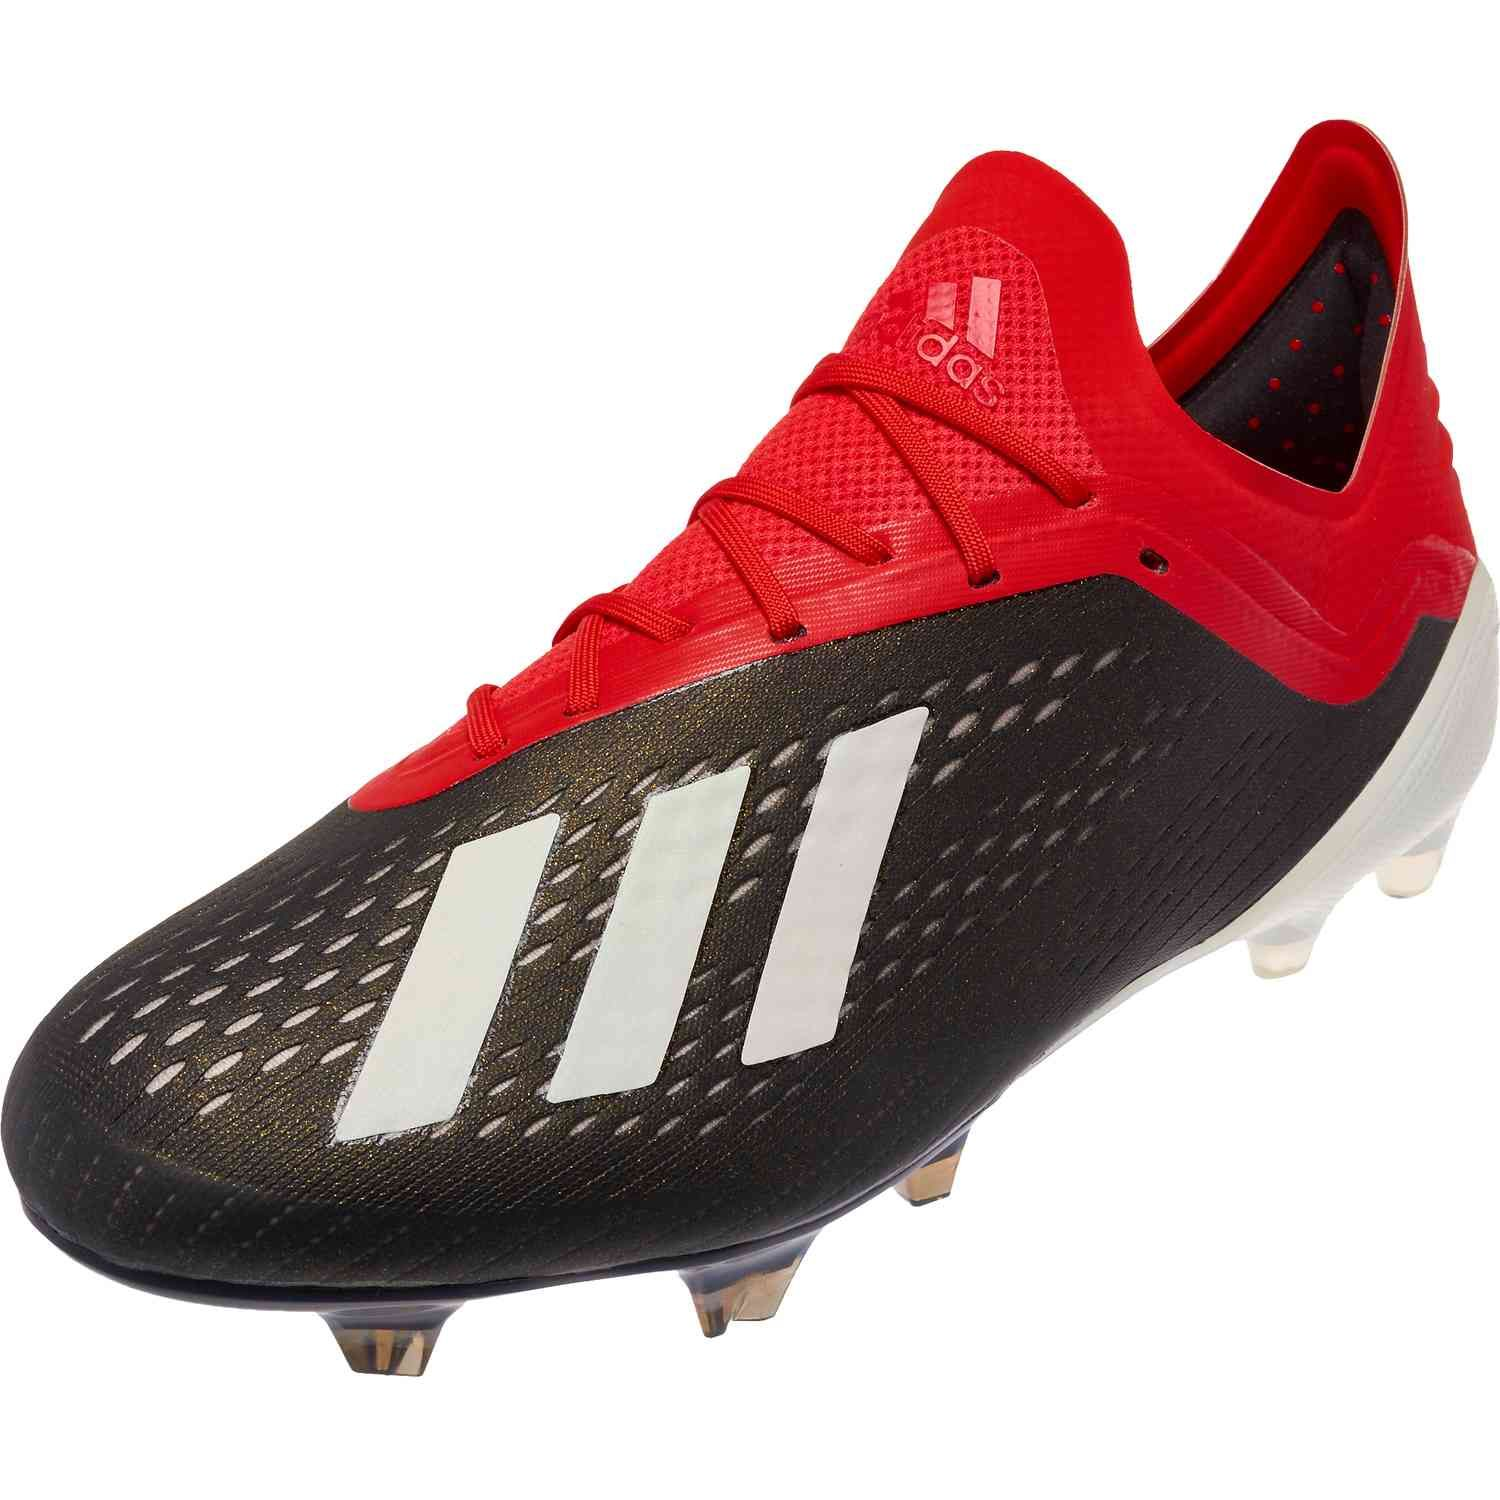 sports shoes 15510 32510 Buy the Always Forward adidas X 18.1 fg soccer cleats from SoccerPro.